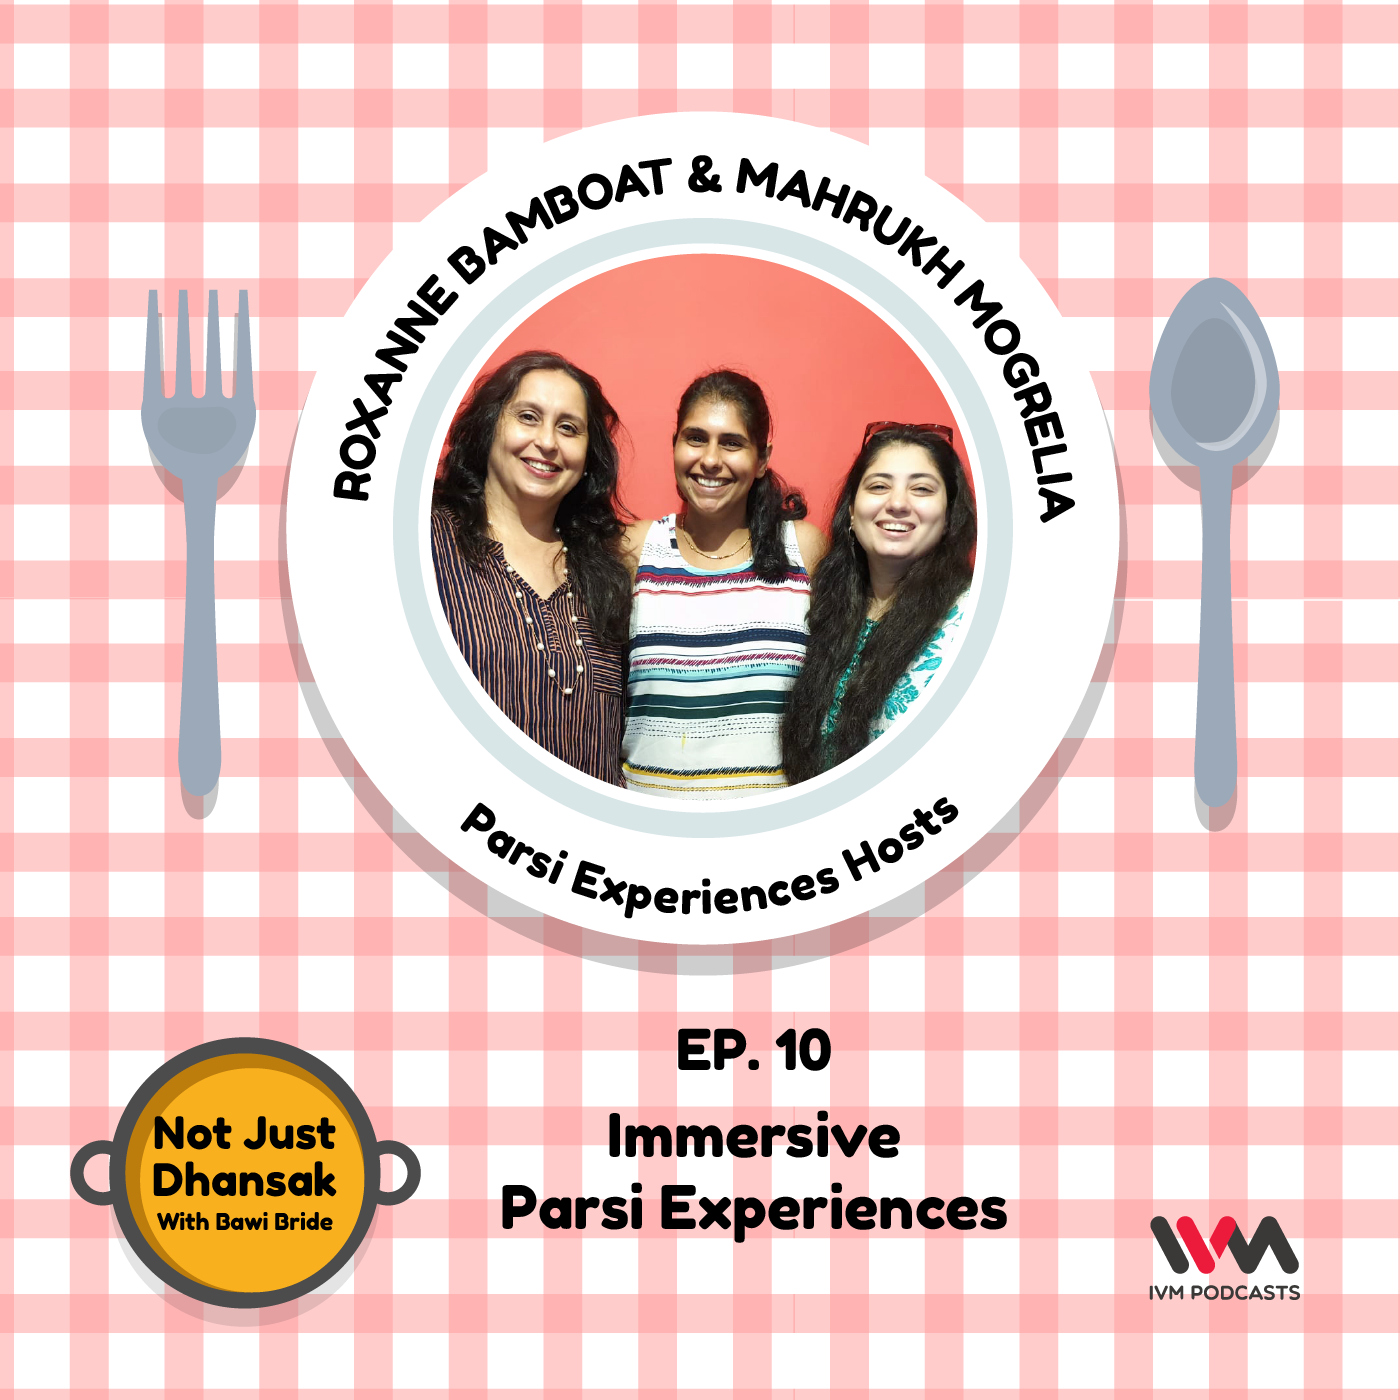 Ep. 10: Immersive Parsi Experiences